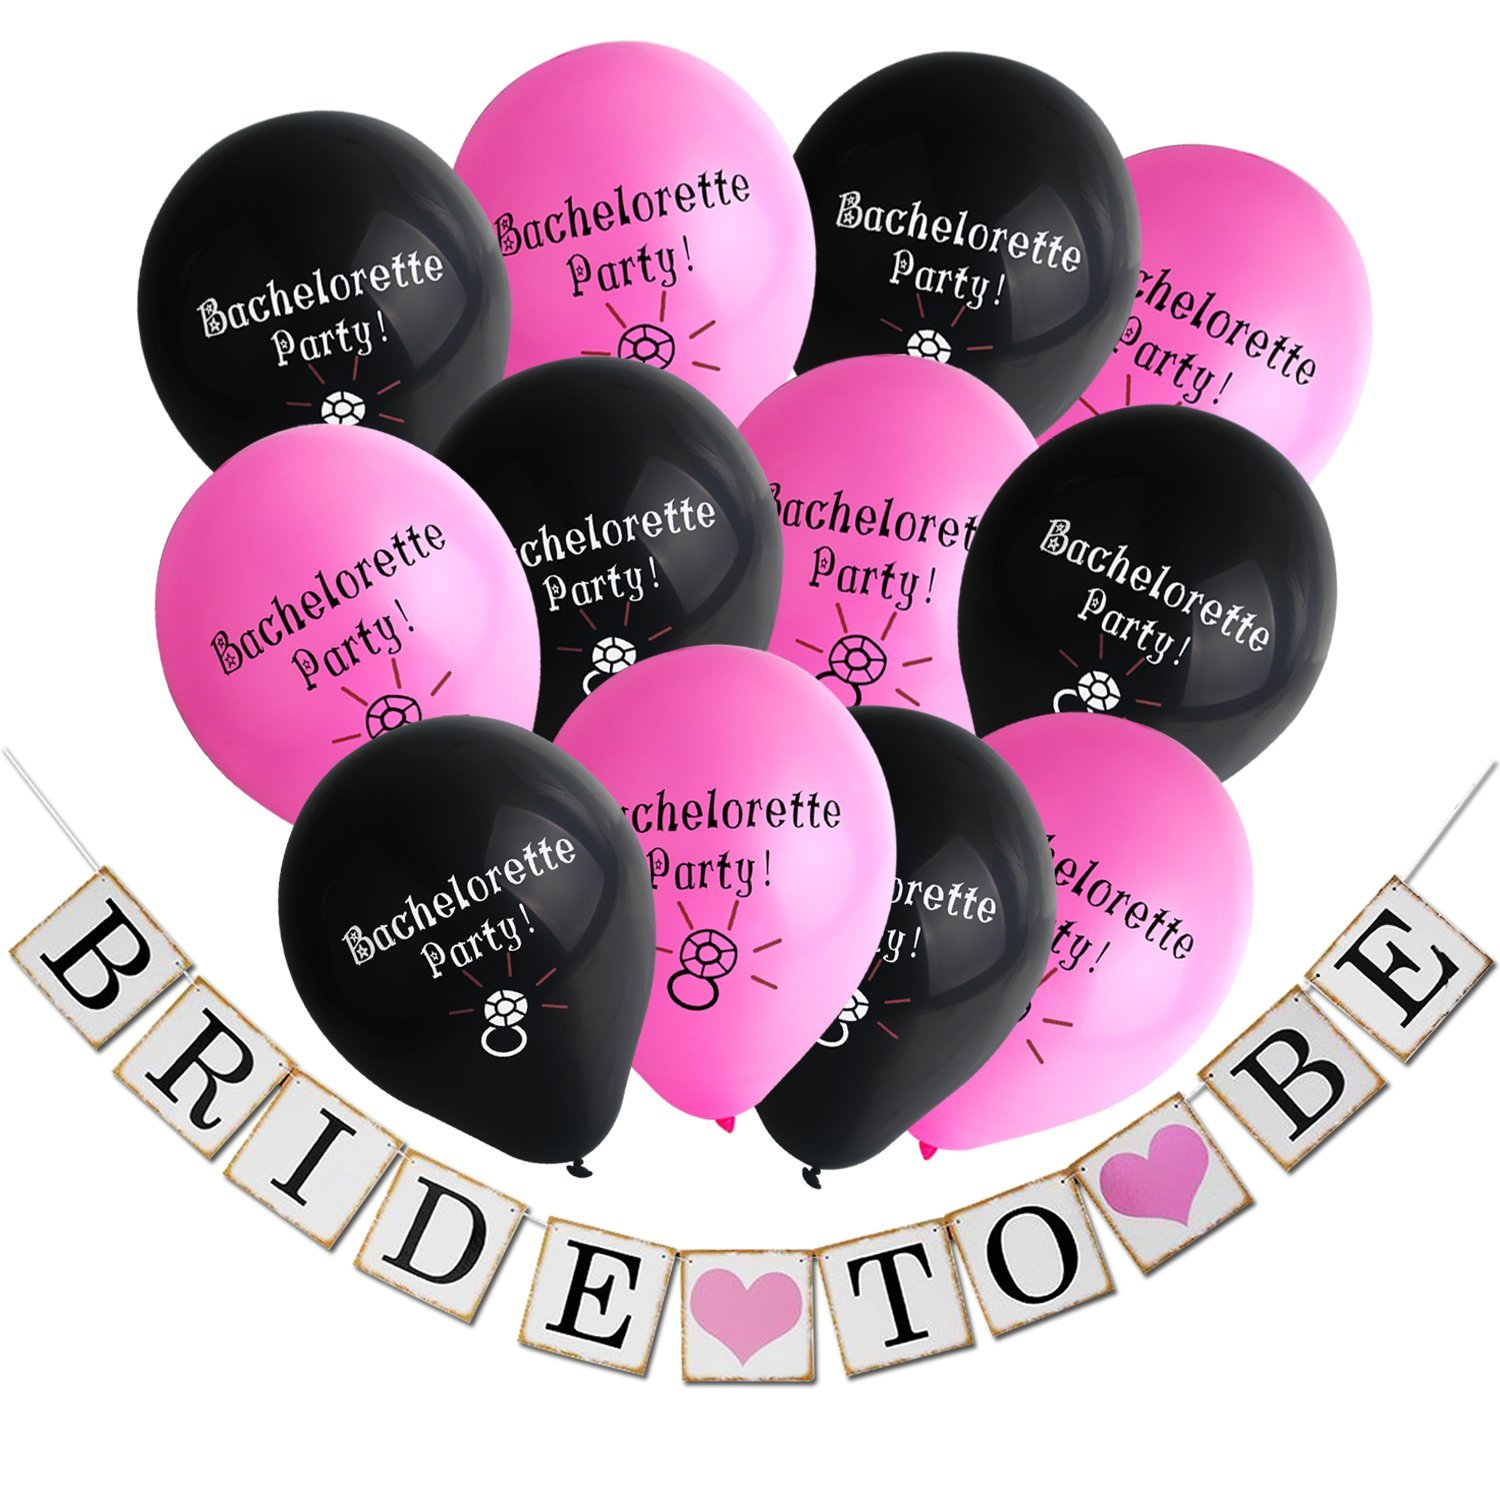 12Pcs bachelor party Balloon Decoration + Bride to Be Banner ...